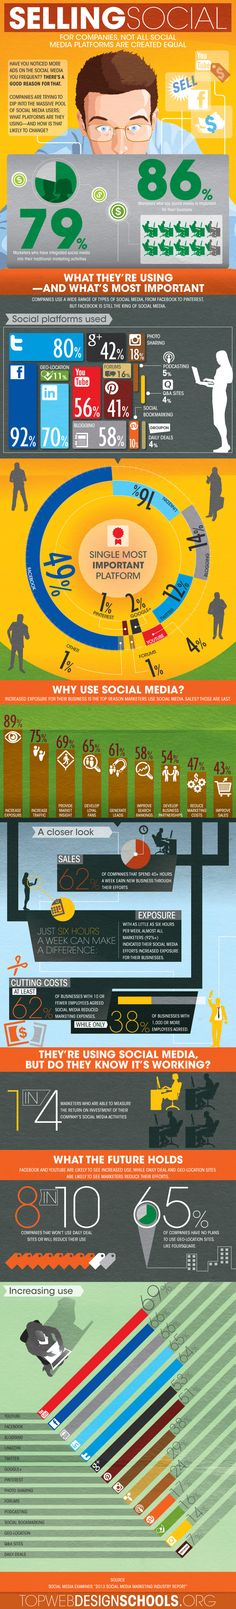 Which is the Best Social Media Platform for Marketers? via @TopWebDesignSchools